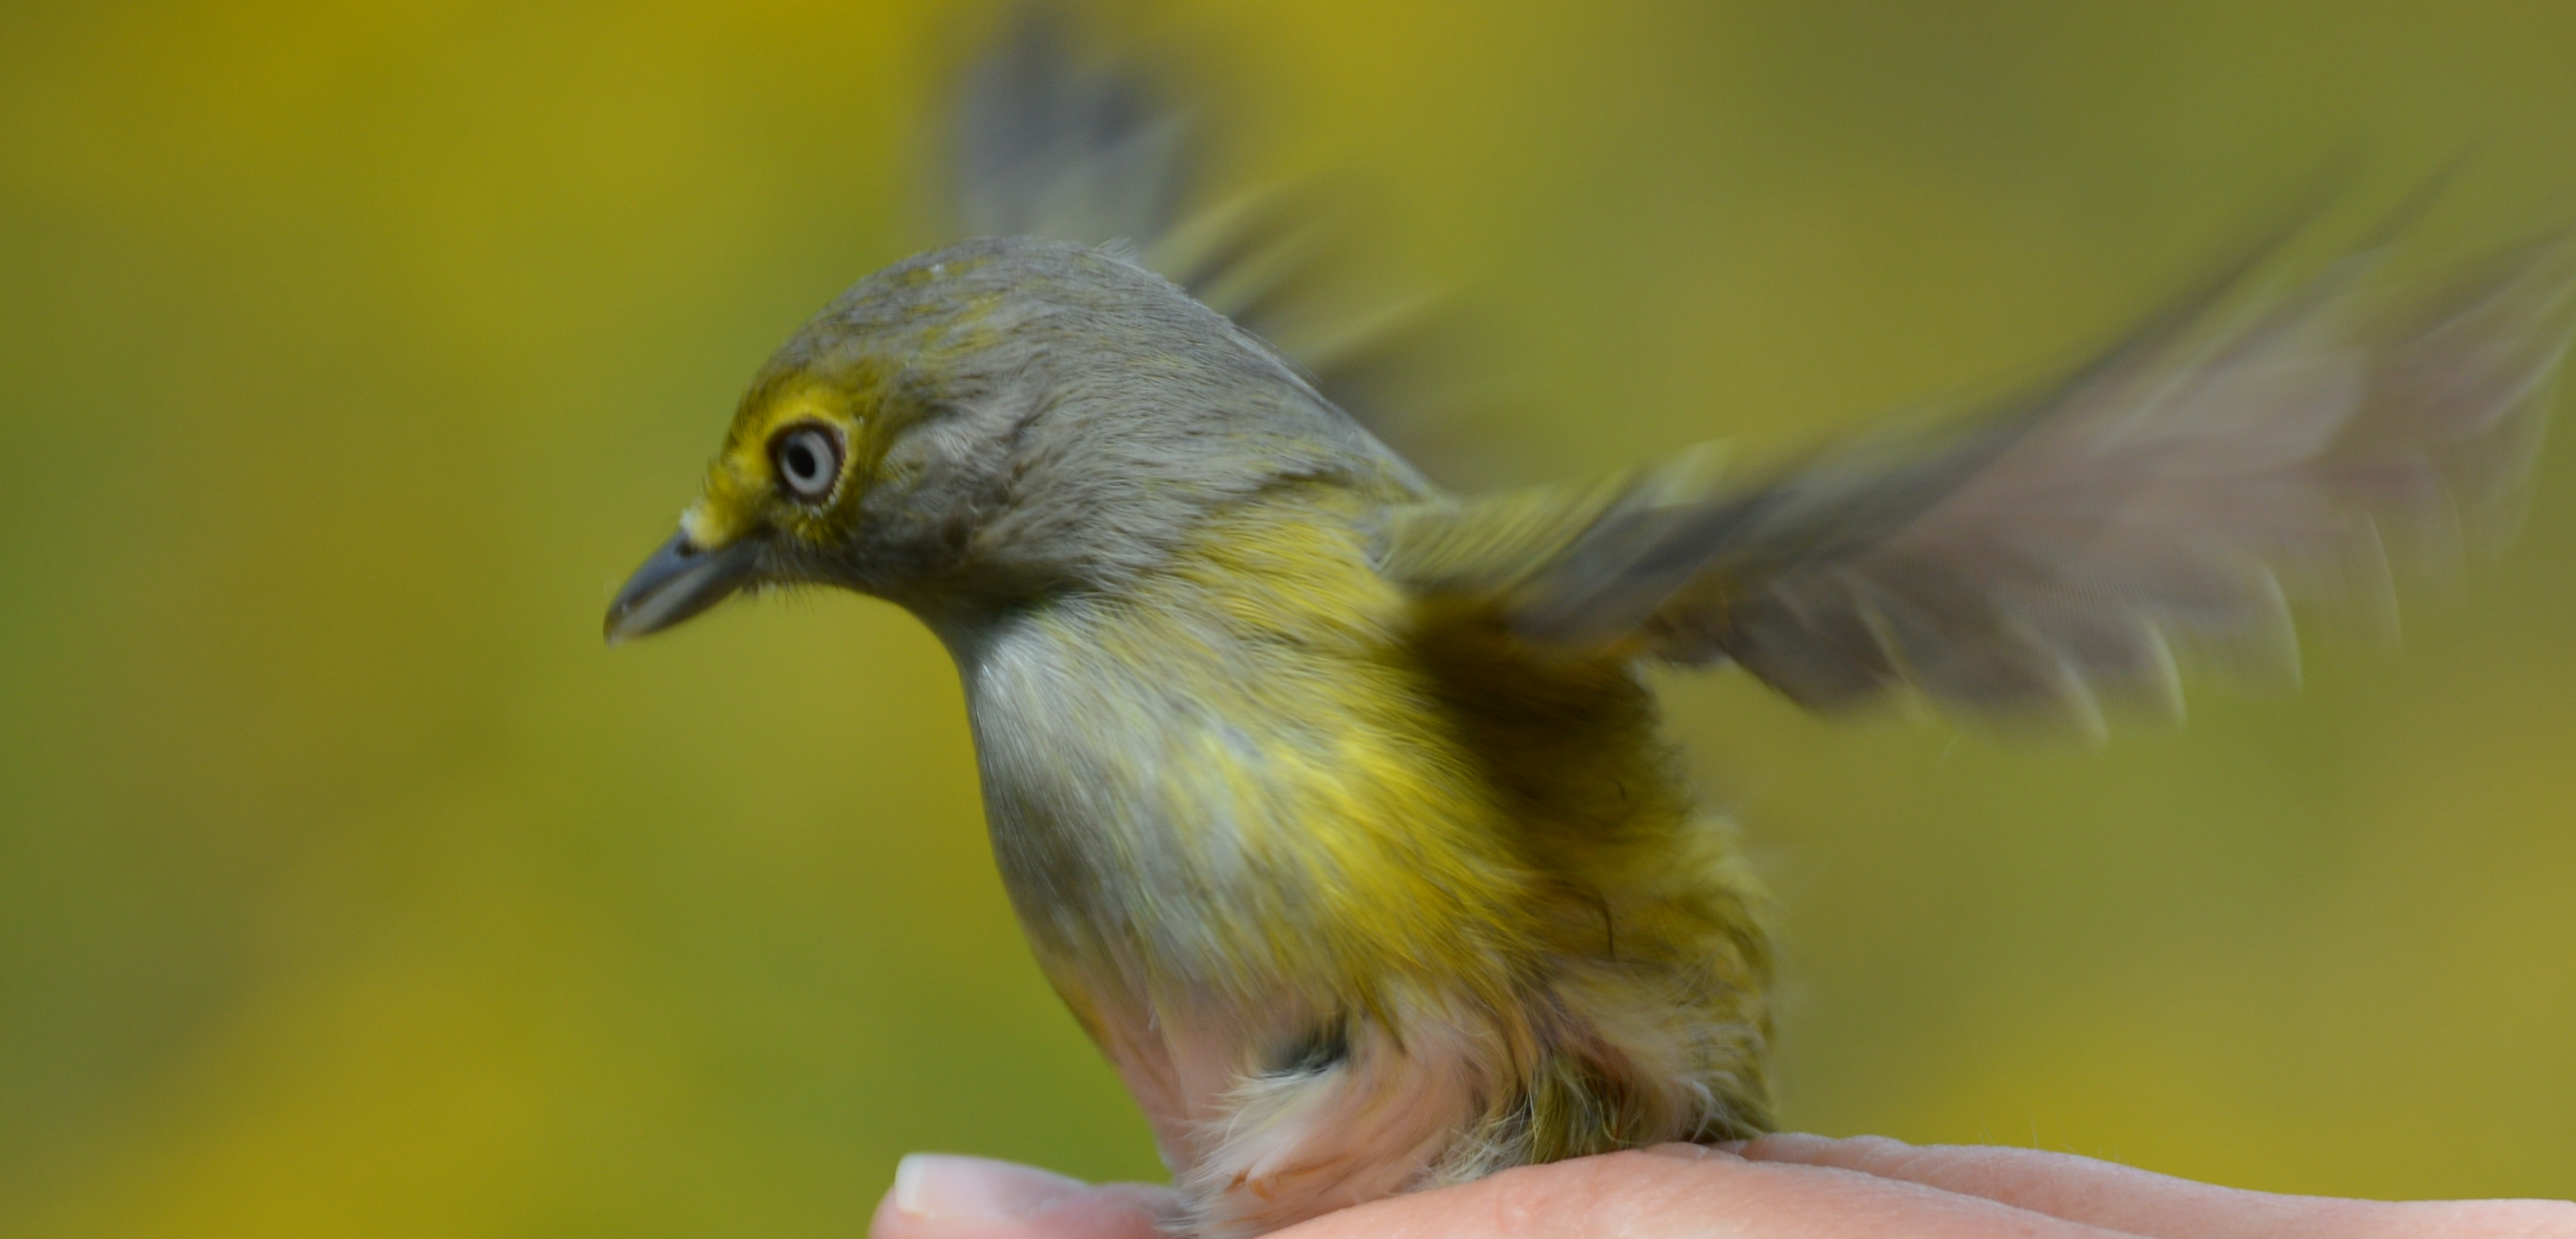 White-eyed Vireo being released after banding. Photo by Blake Goll/Staff